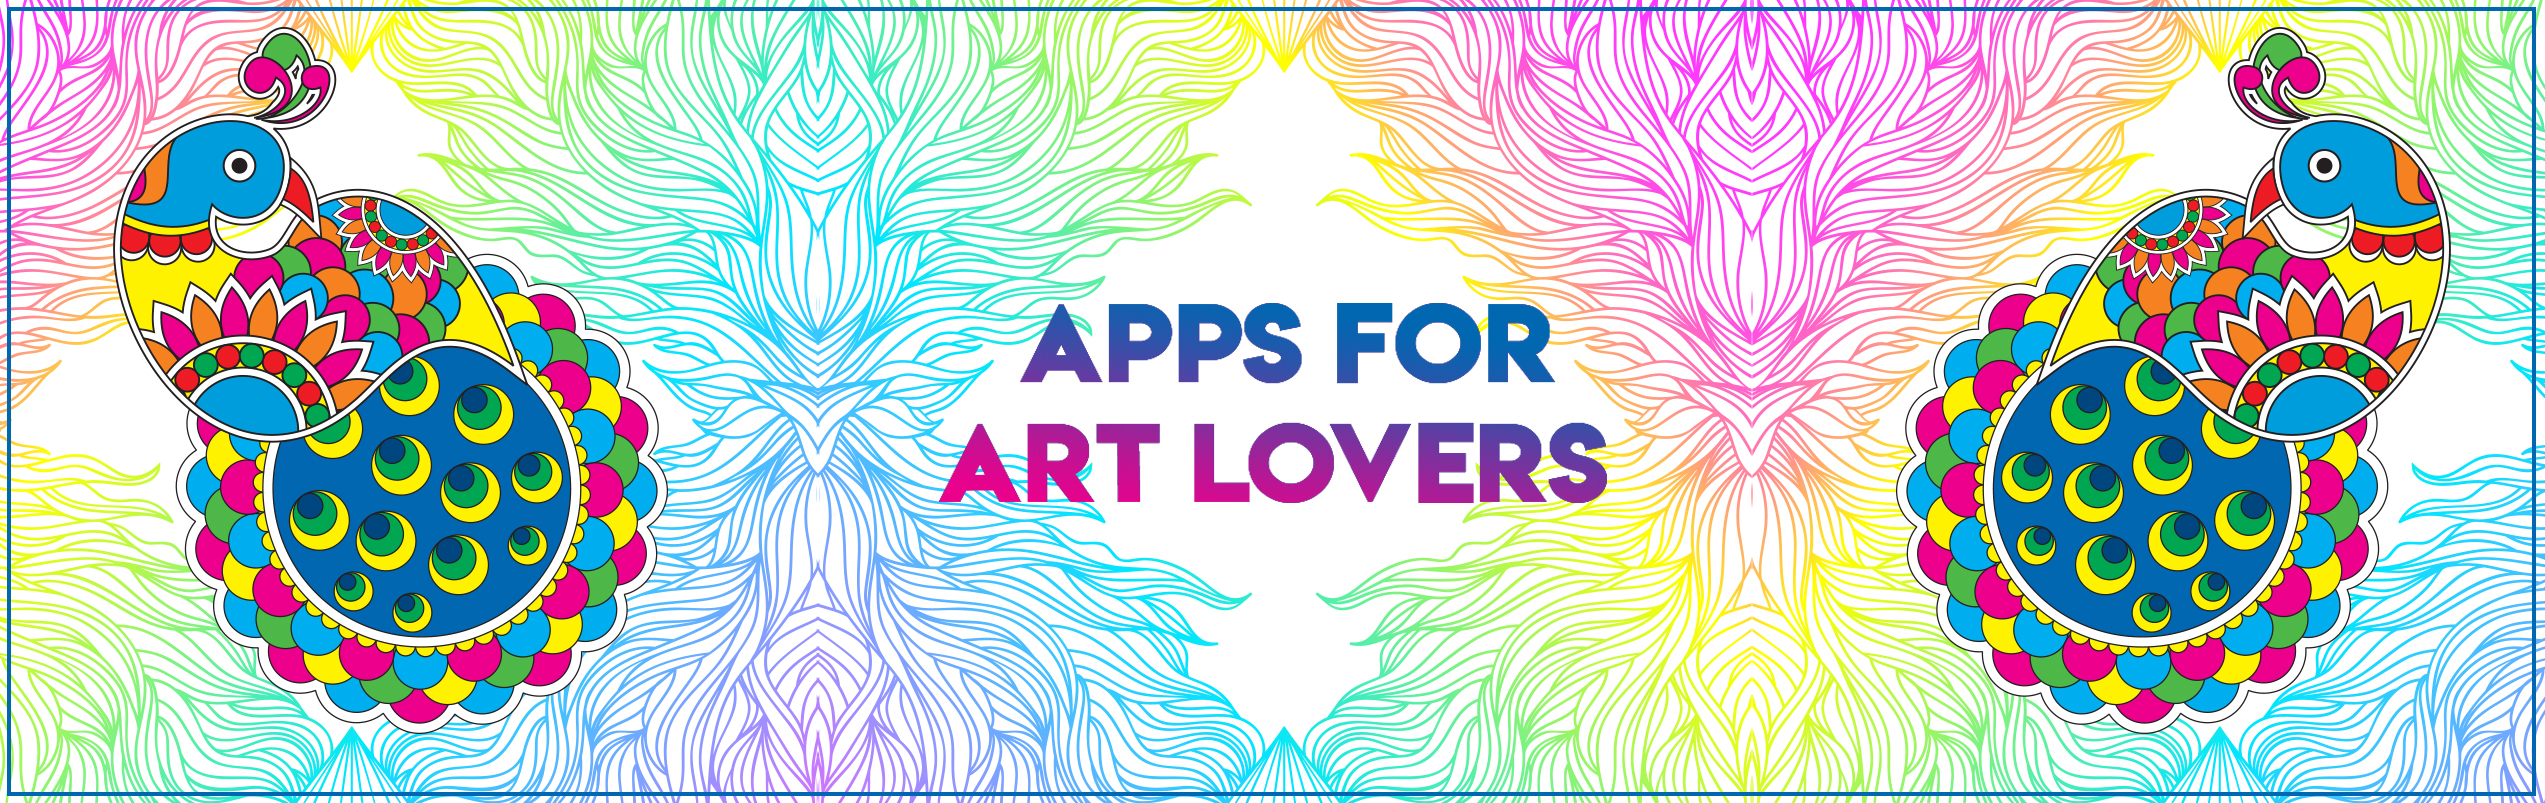 Art Lovers Rejoice! These Apps Are Just For You!